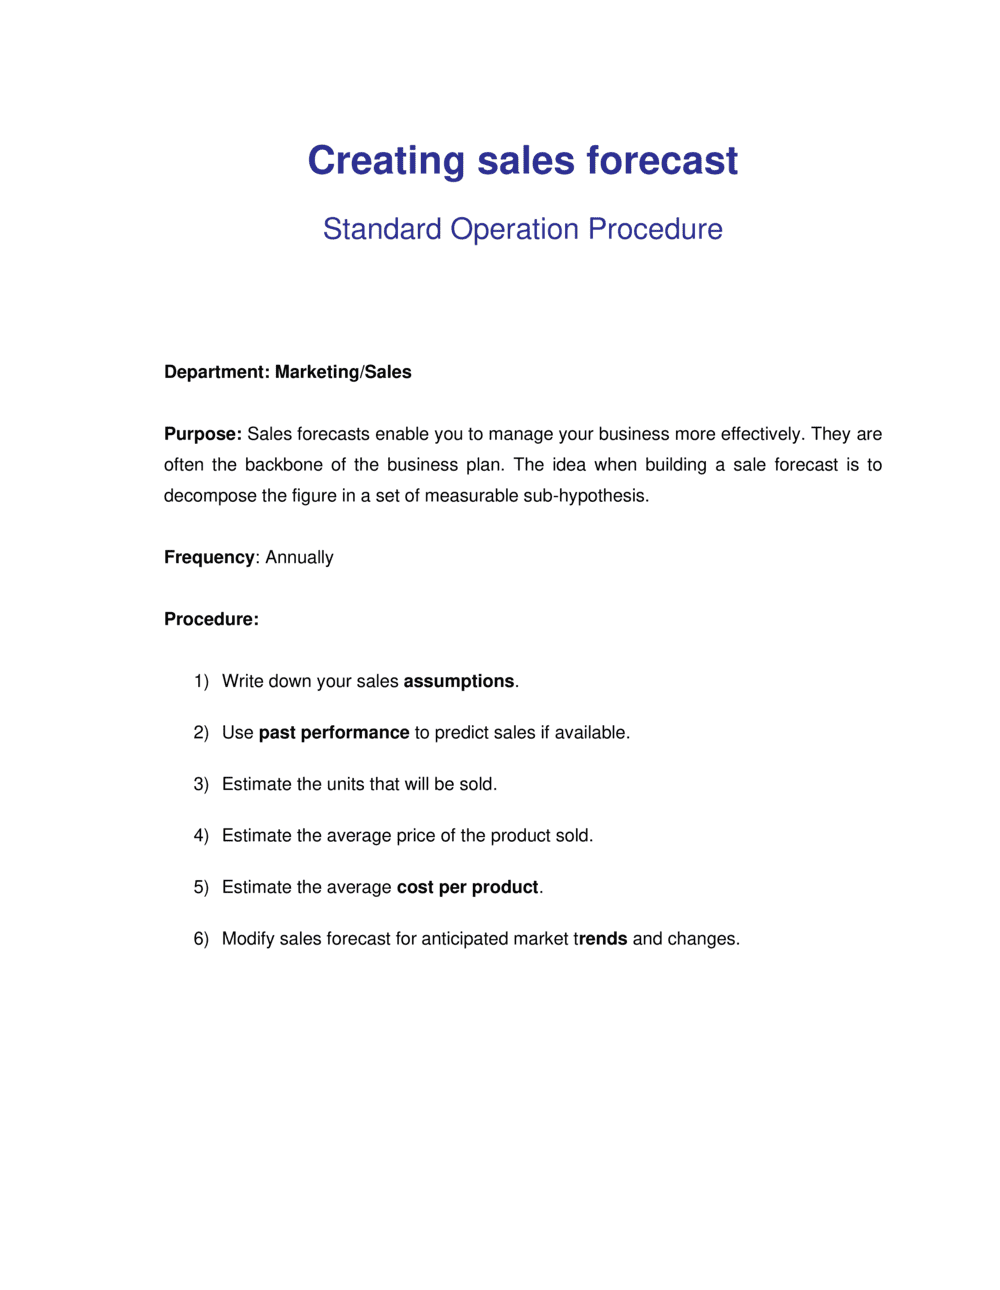 Business-in-a-Box's How to Create a Sales Forecast Template